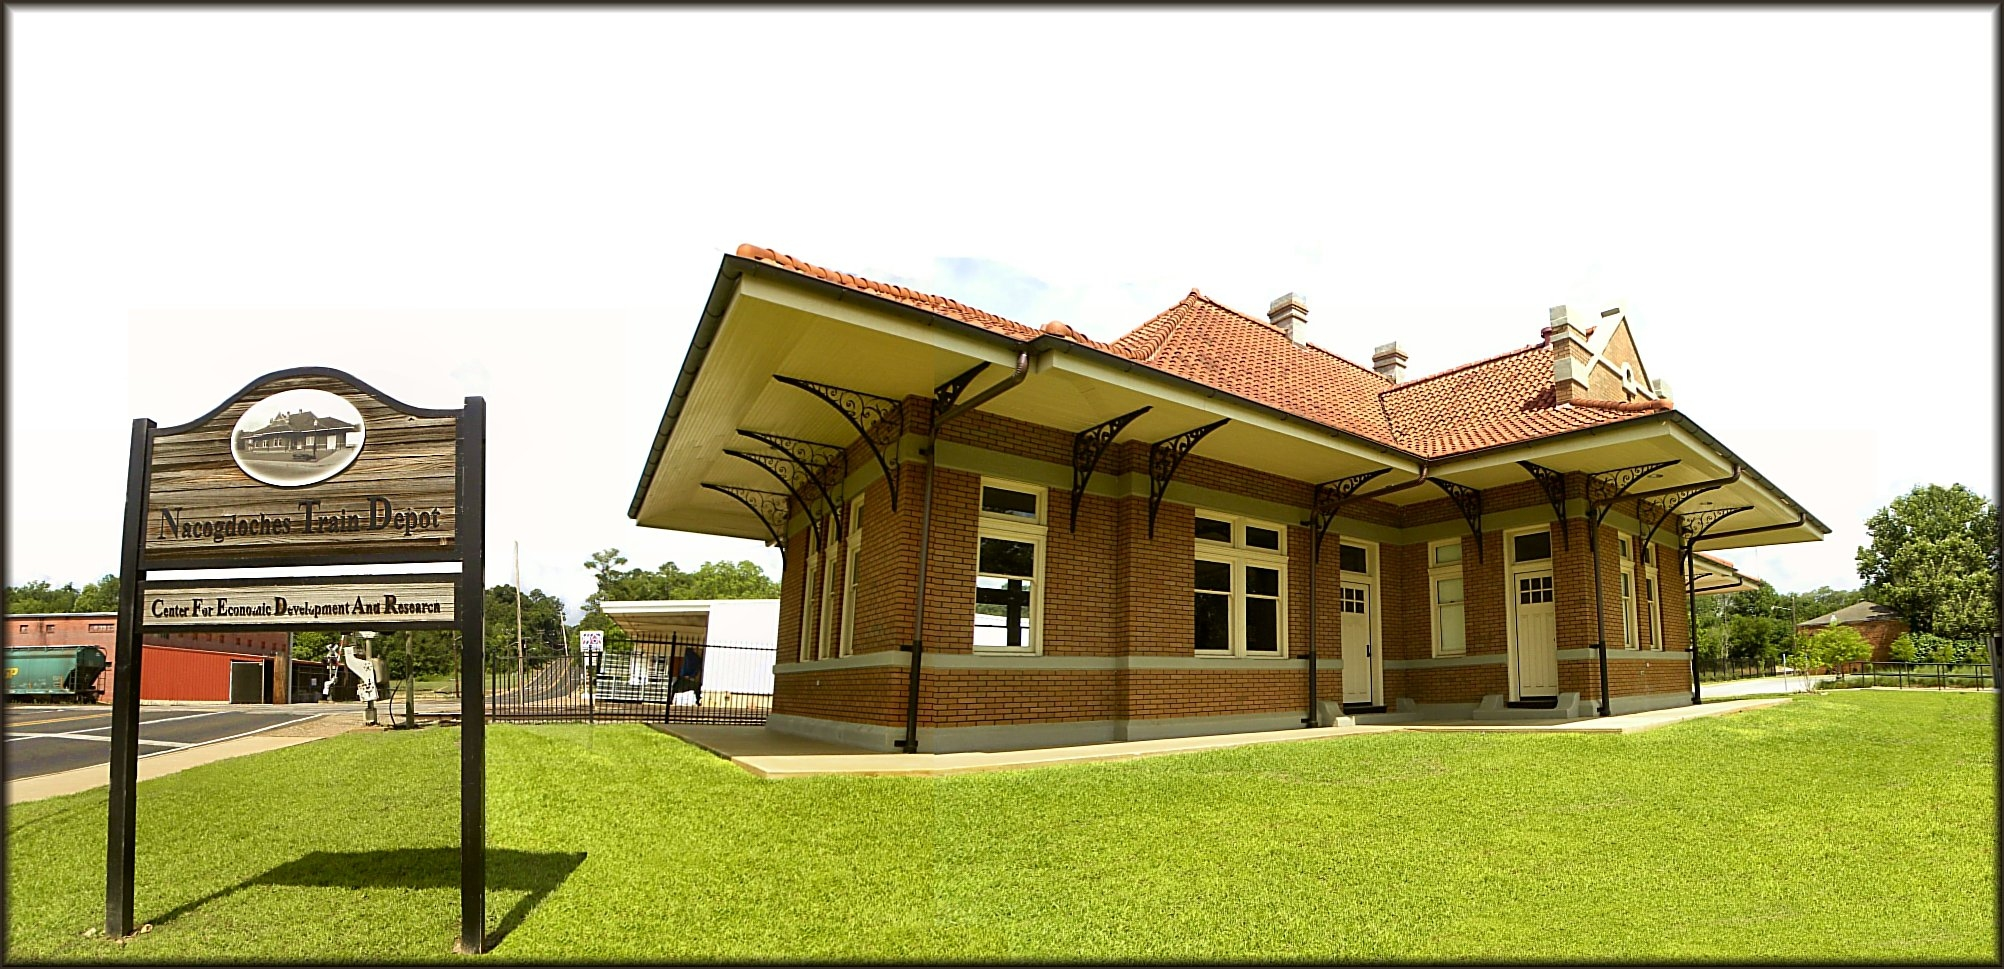 Nacogdoches Train Depot and Center for Economic Development and Research in Historic Nacogdoches